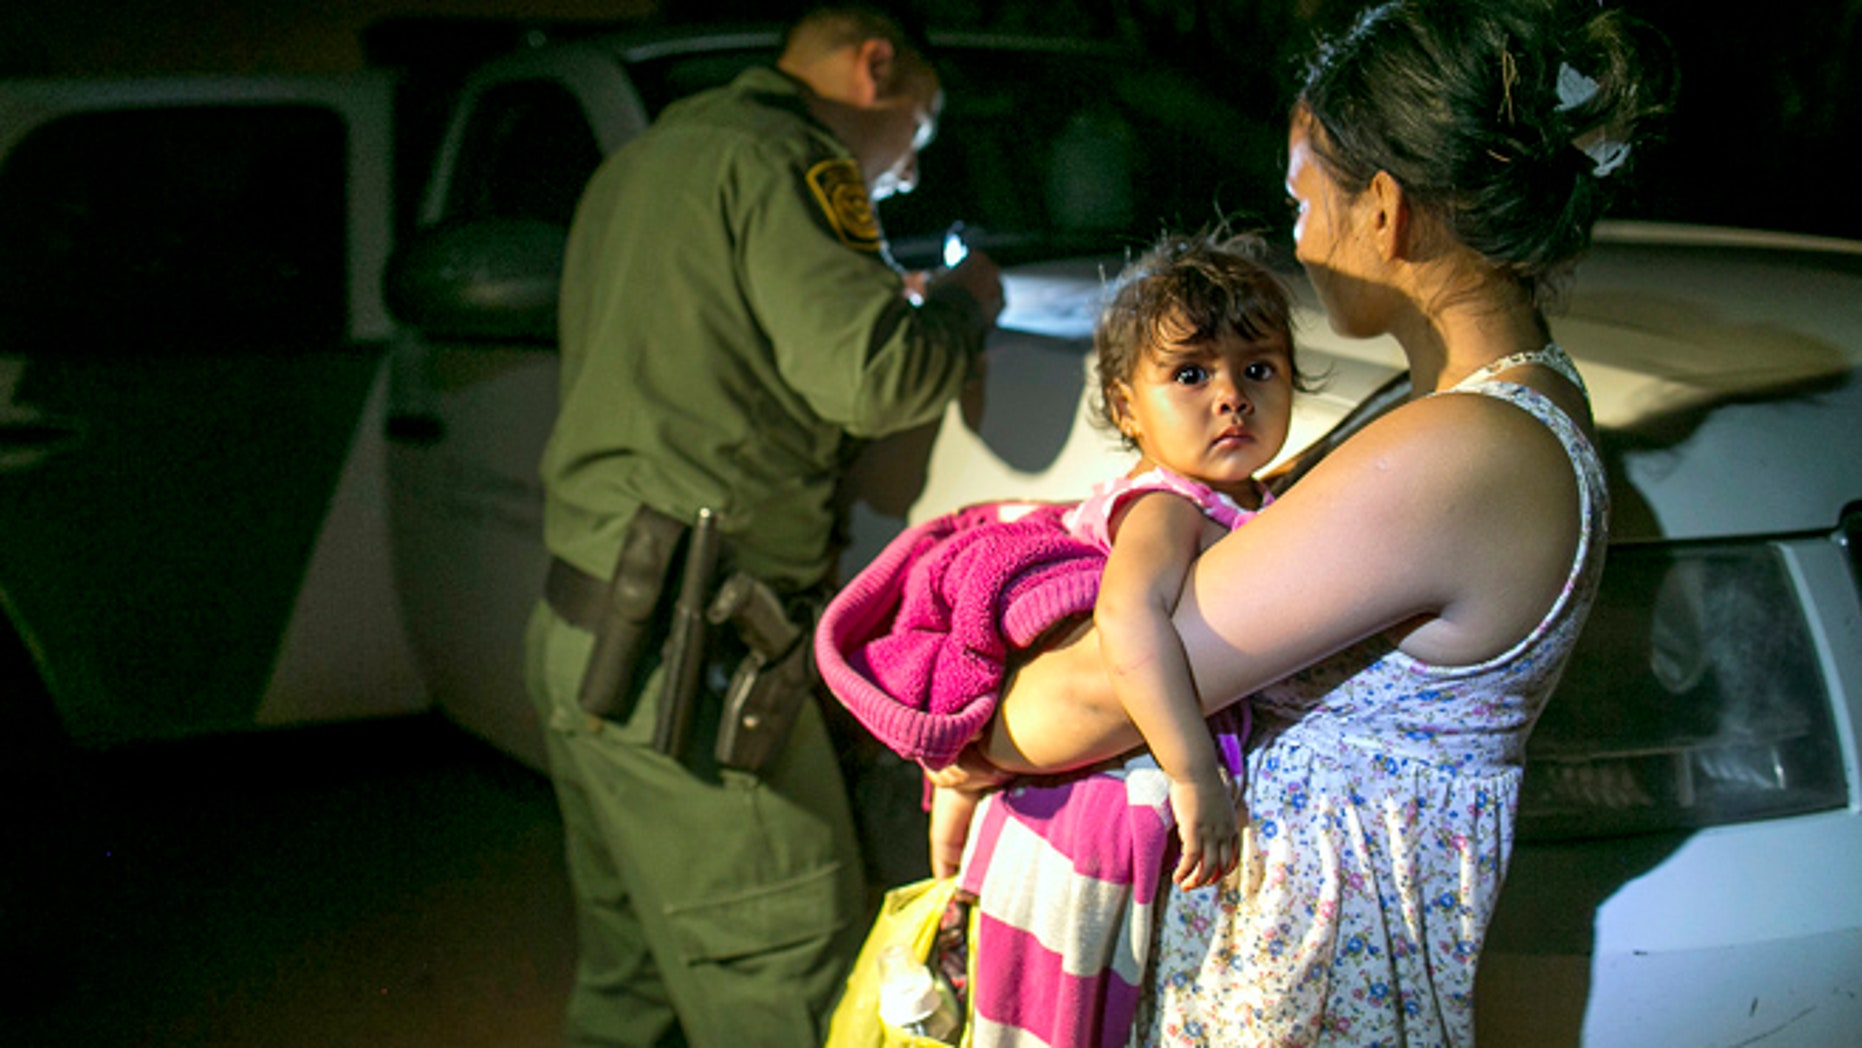 July 3, 2014: Flor Garcia, 19, of Honduras, holds her 1-year-old daughter, Flor Fernandez, after they turned themselves over to Customs and Border Protection Services agents after crossing the Rio Grande from Mexico near McAllen, Texas.